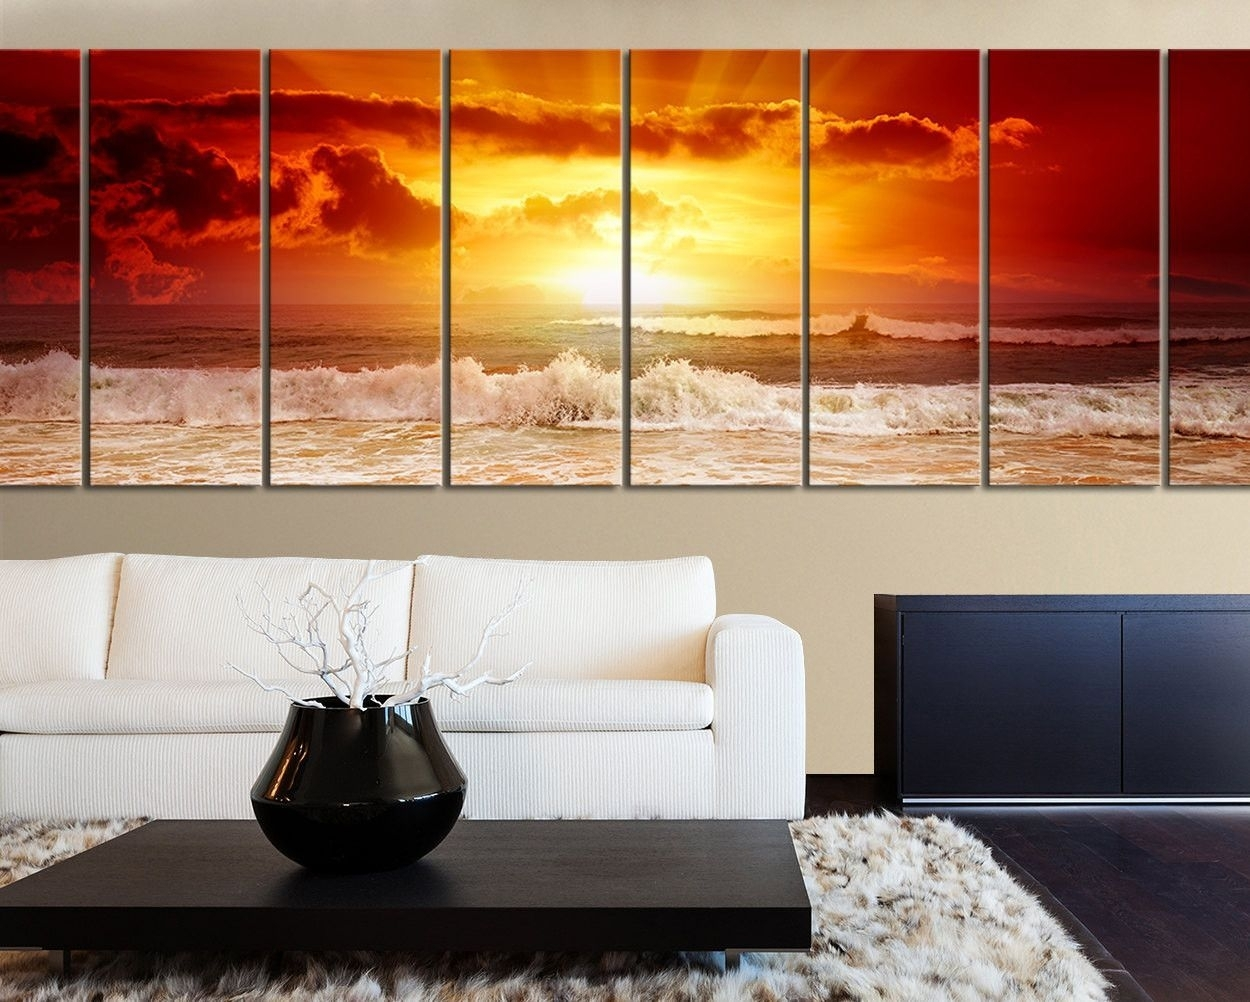 Large Wall Art Canvas Sunset Ocean Print – Xxl Wall Canvas Art In Most Current Ocean Canvas Wall Art (View 6 of 15)